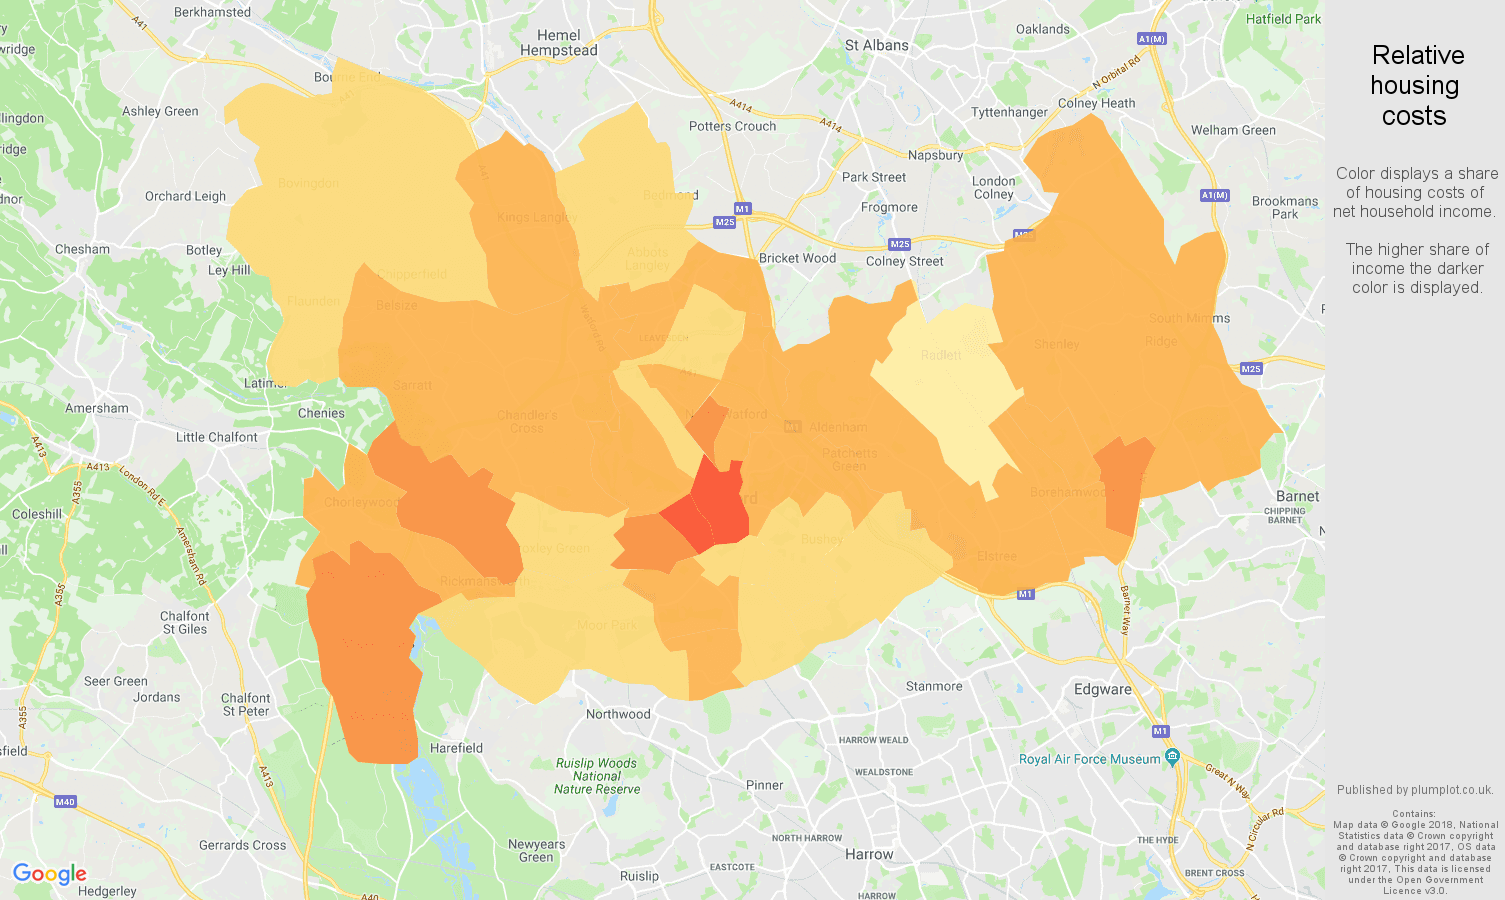 Watford relative housing costs map